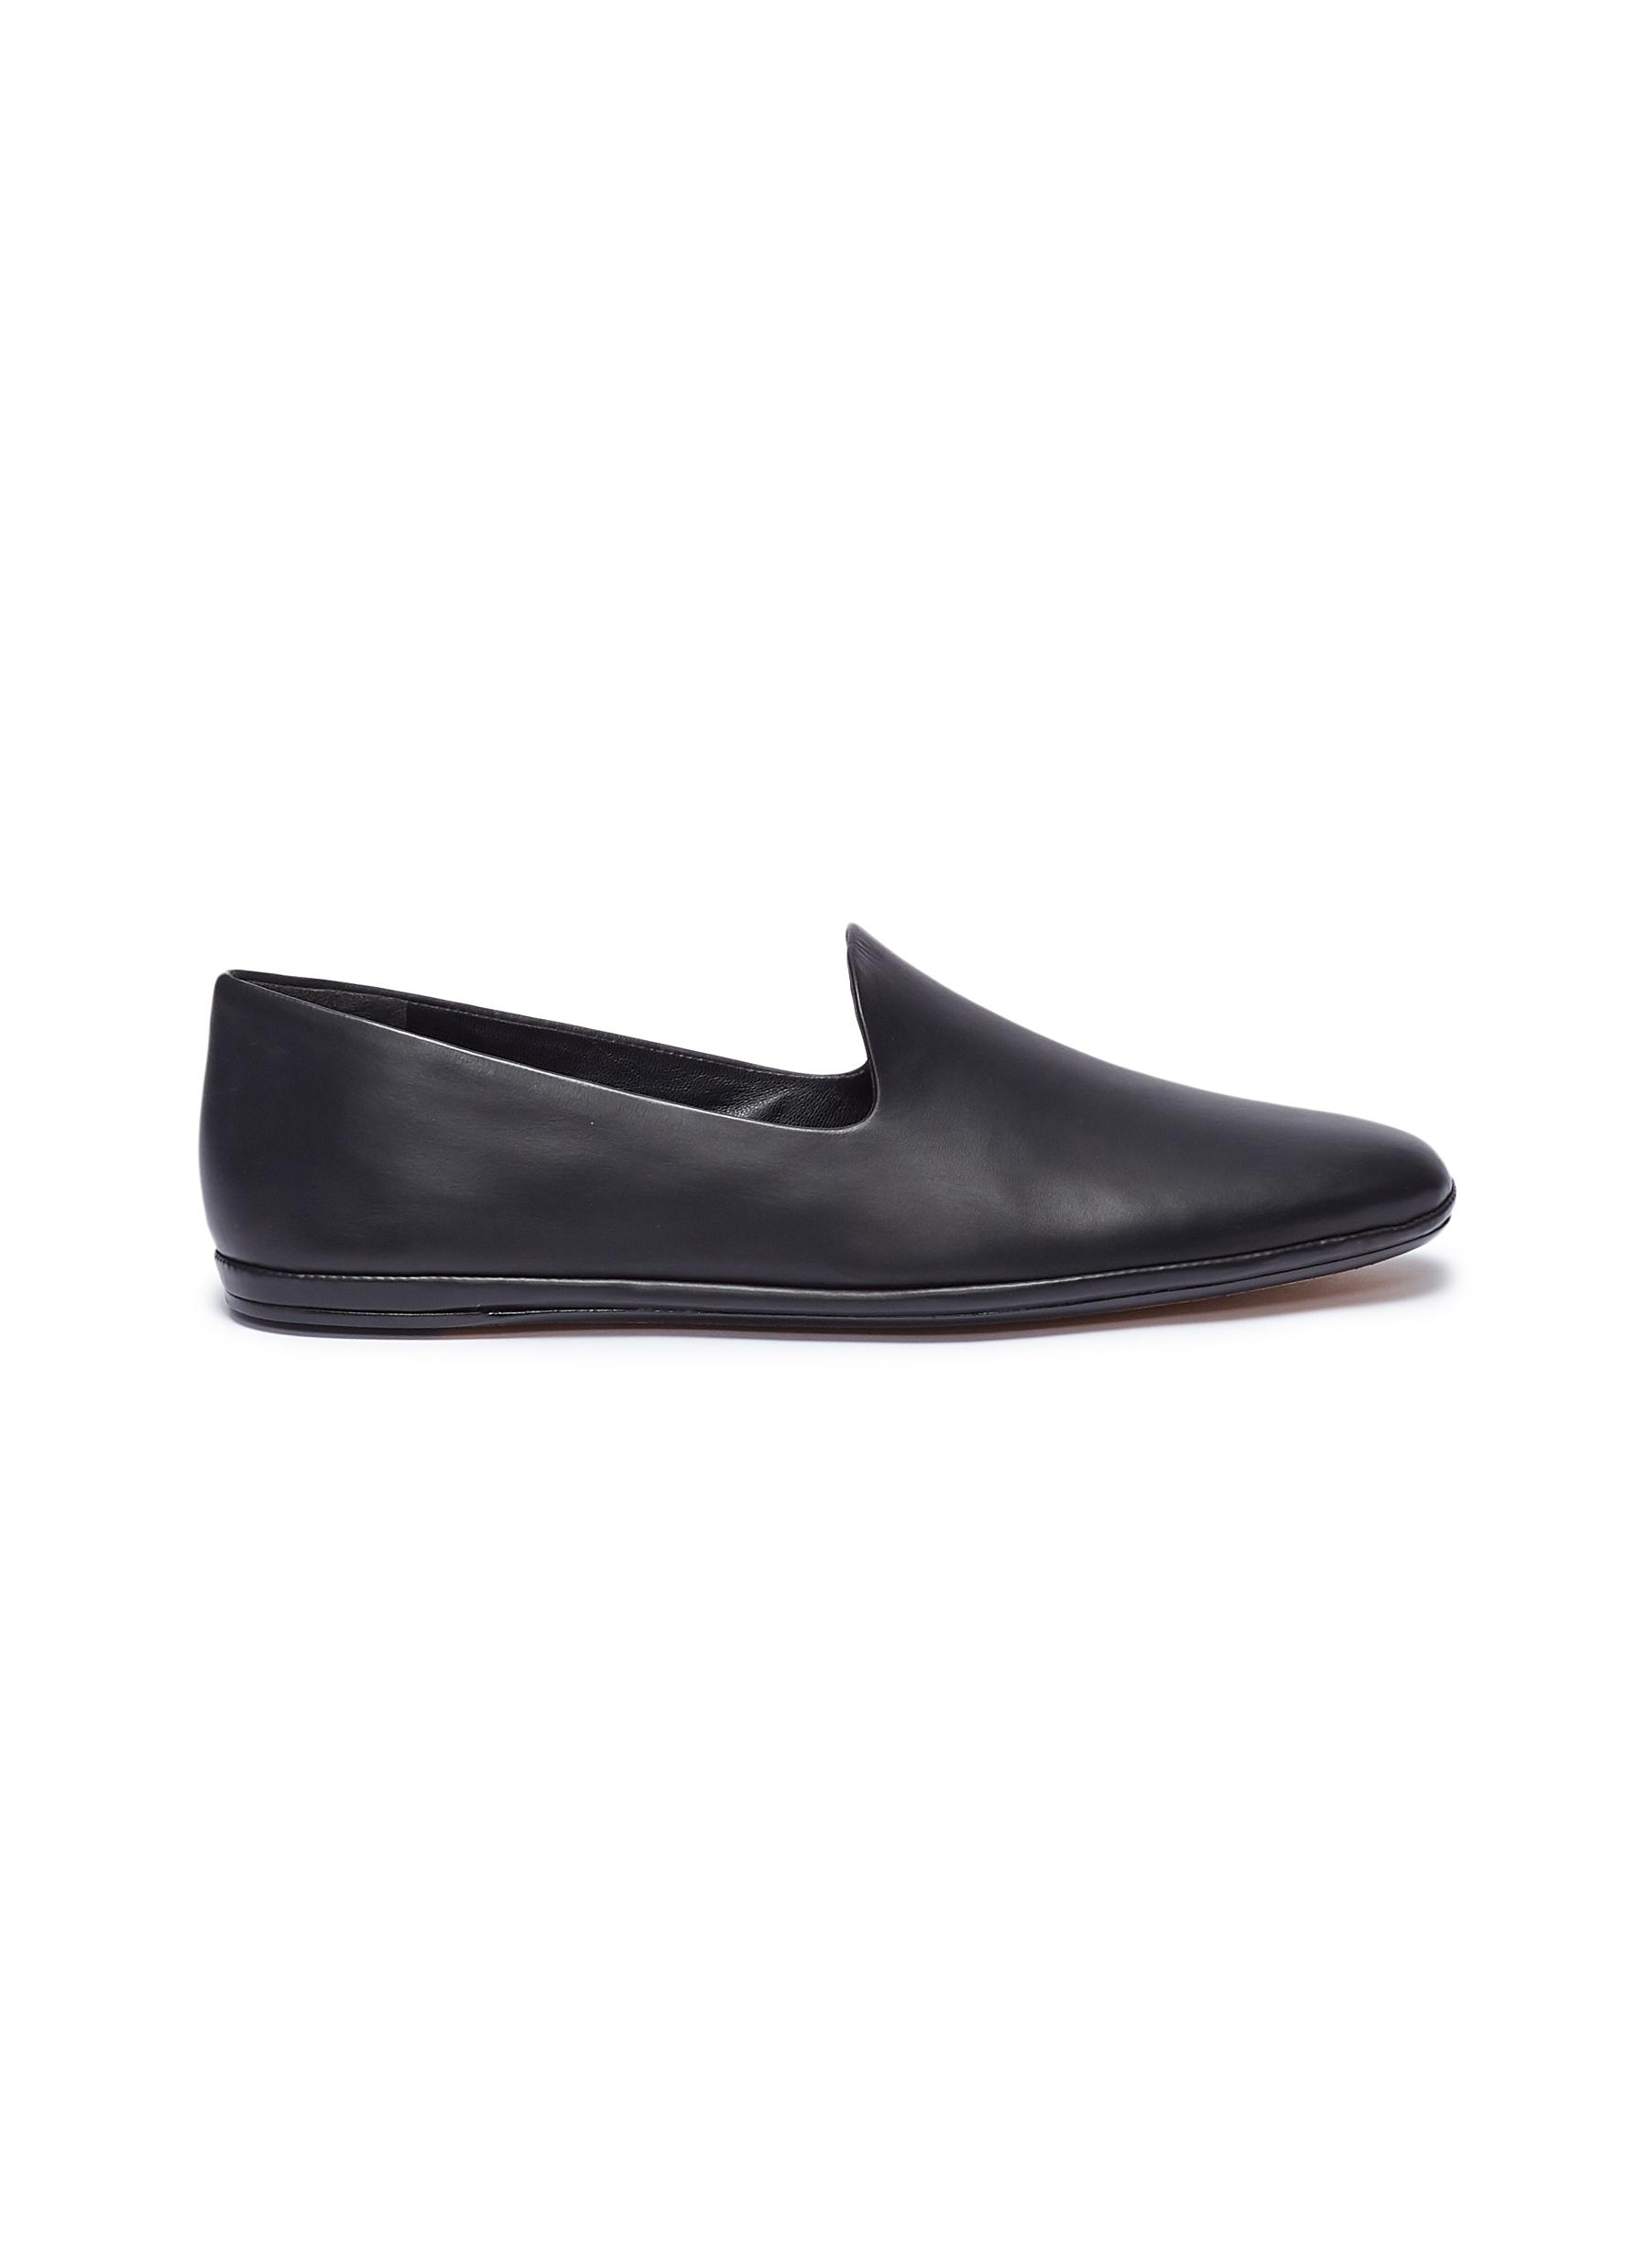 Paz leather loafers by Vince